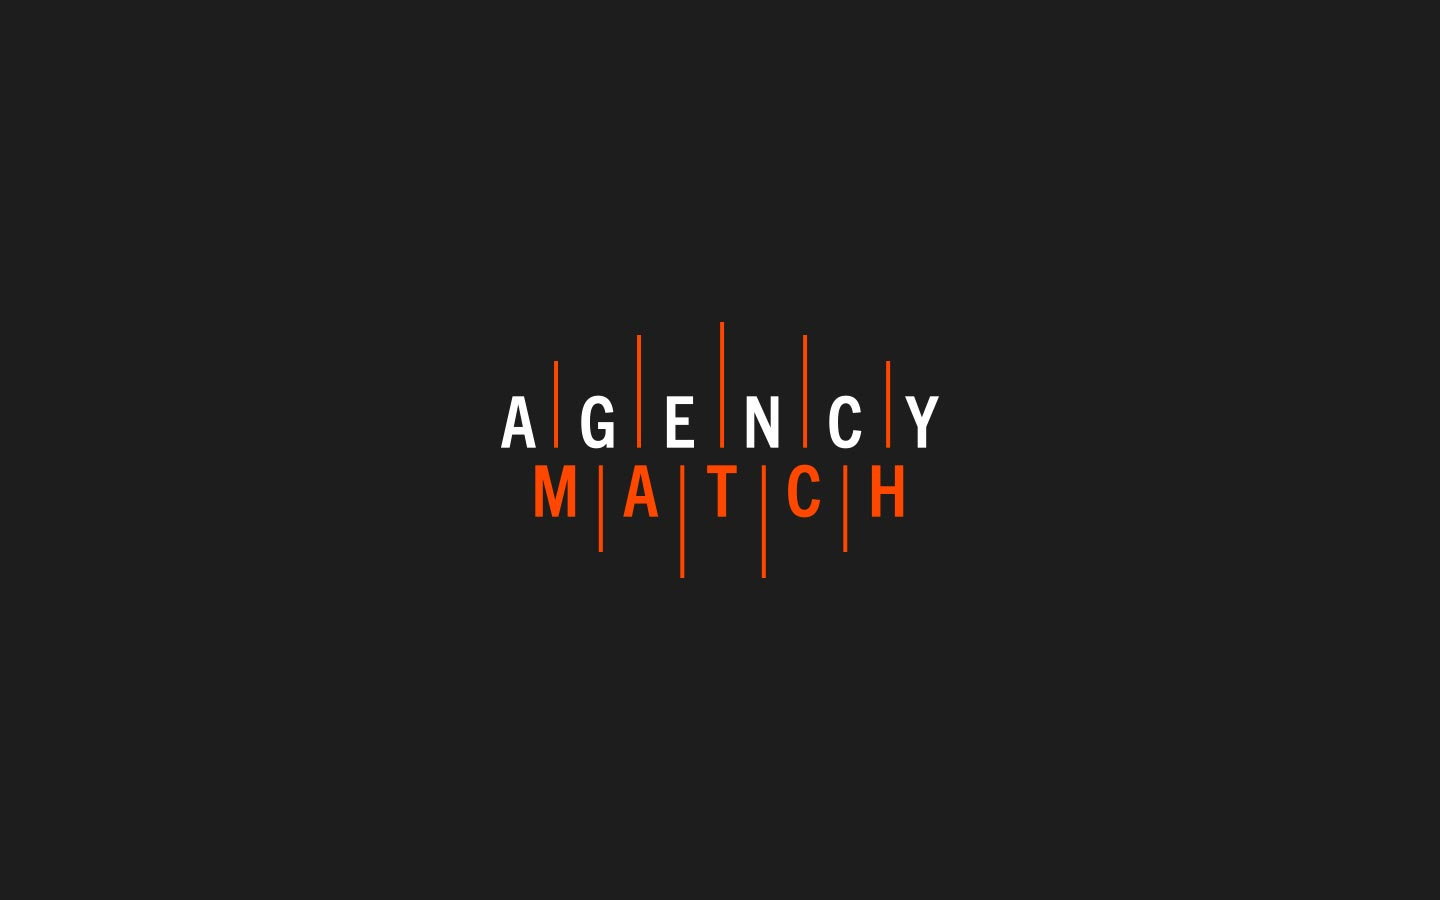 Agency match logo